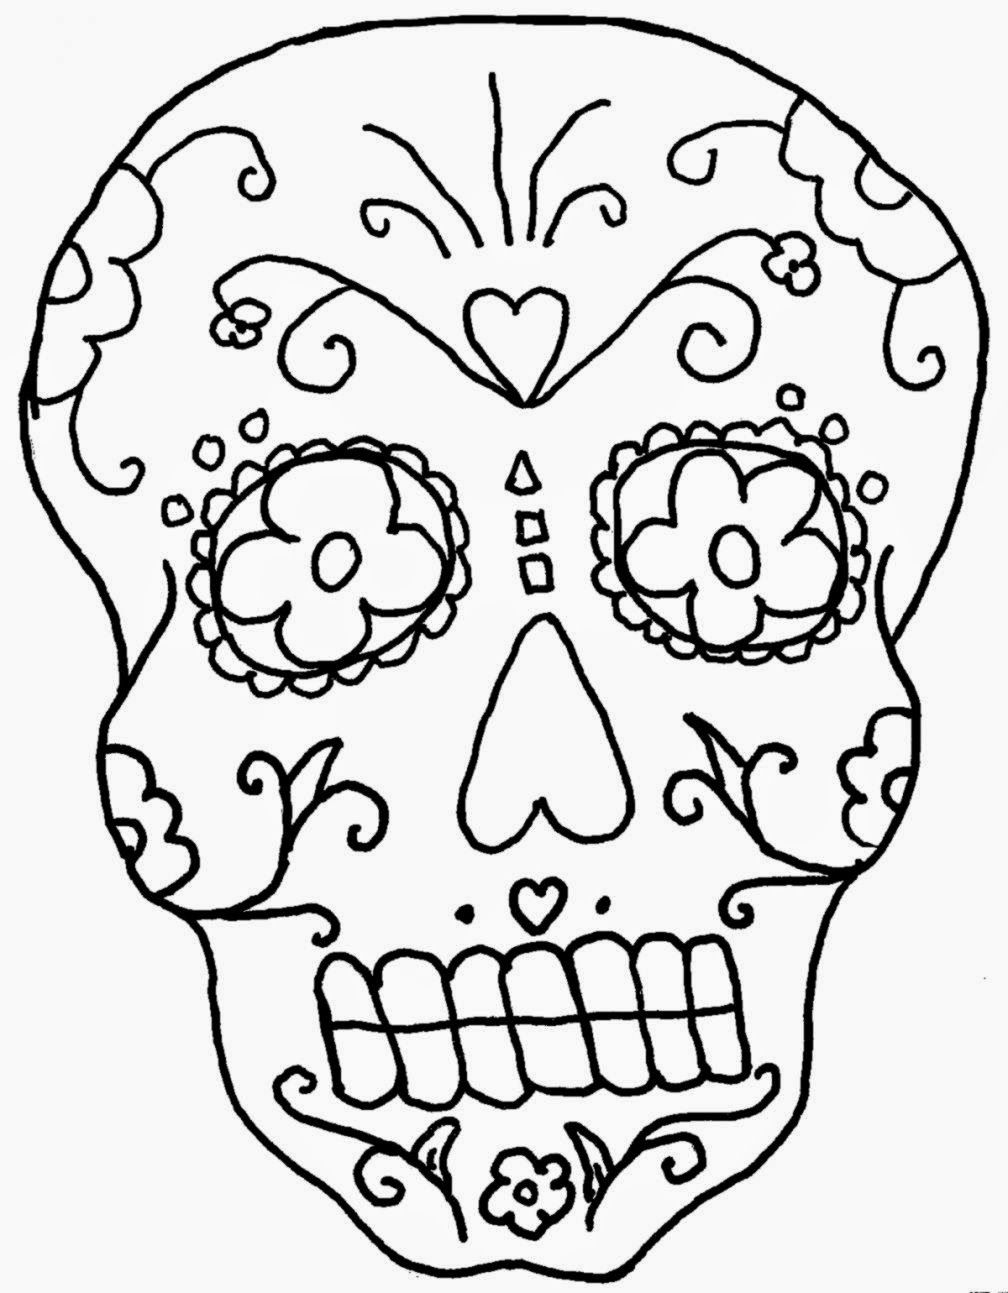 Day Of The Dead Skull Coloring Pages Printable - Coloring Home